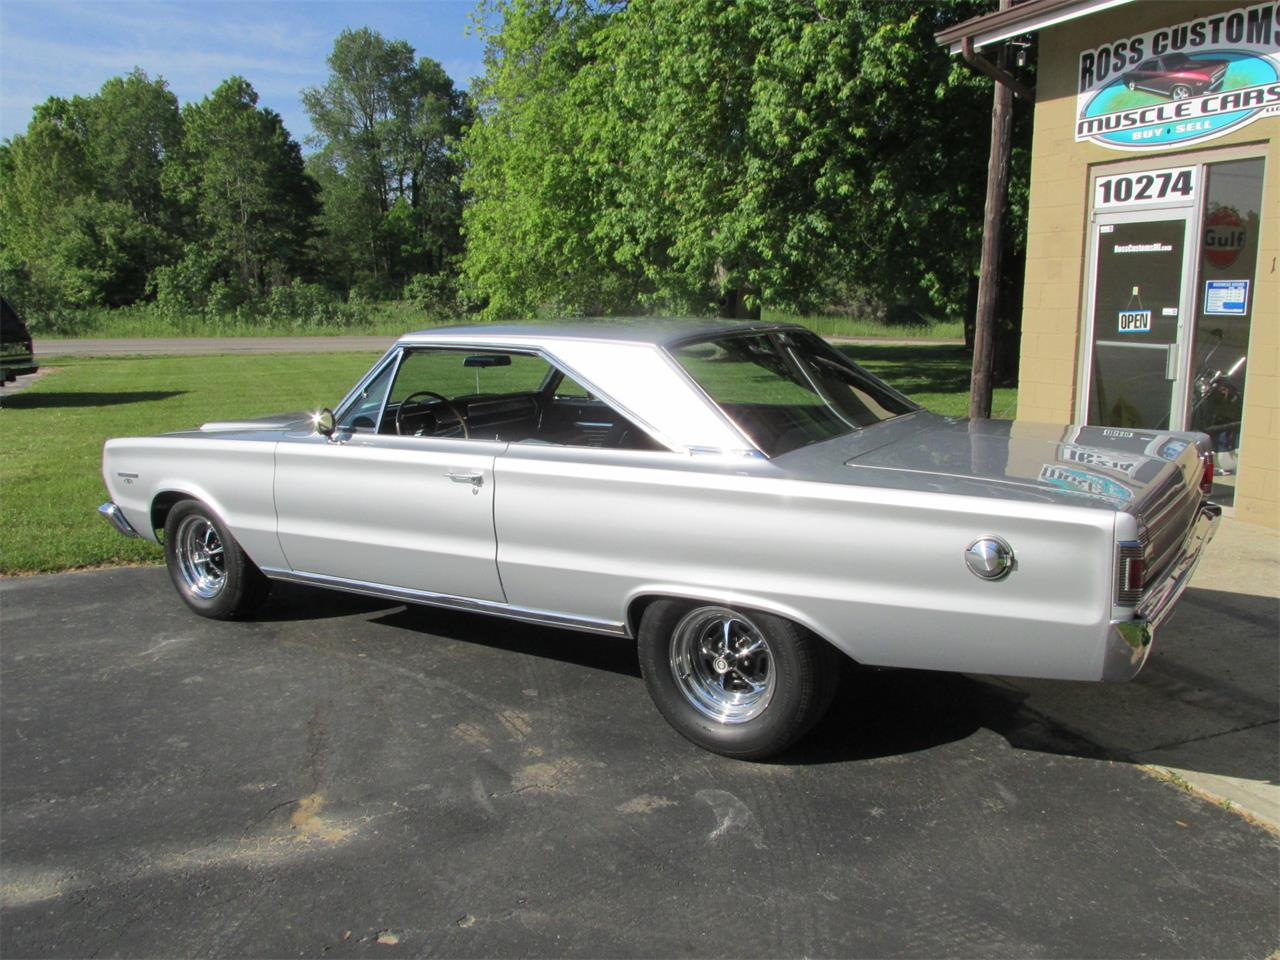 Large Picture of Classic 1967 Plymouth GTX Offered by Ross Custom Muscle Cars LLC - QCBG